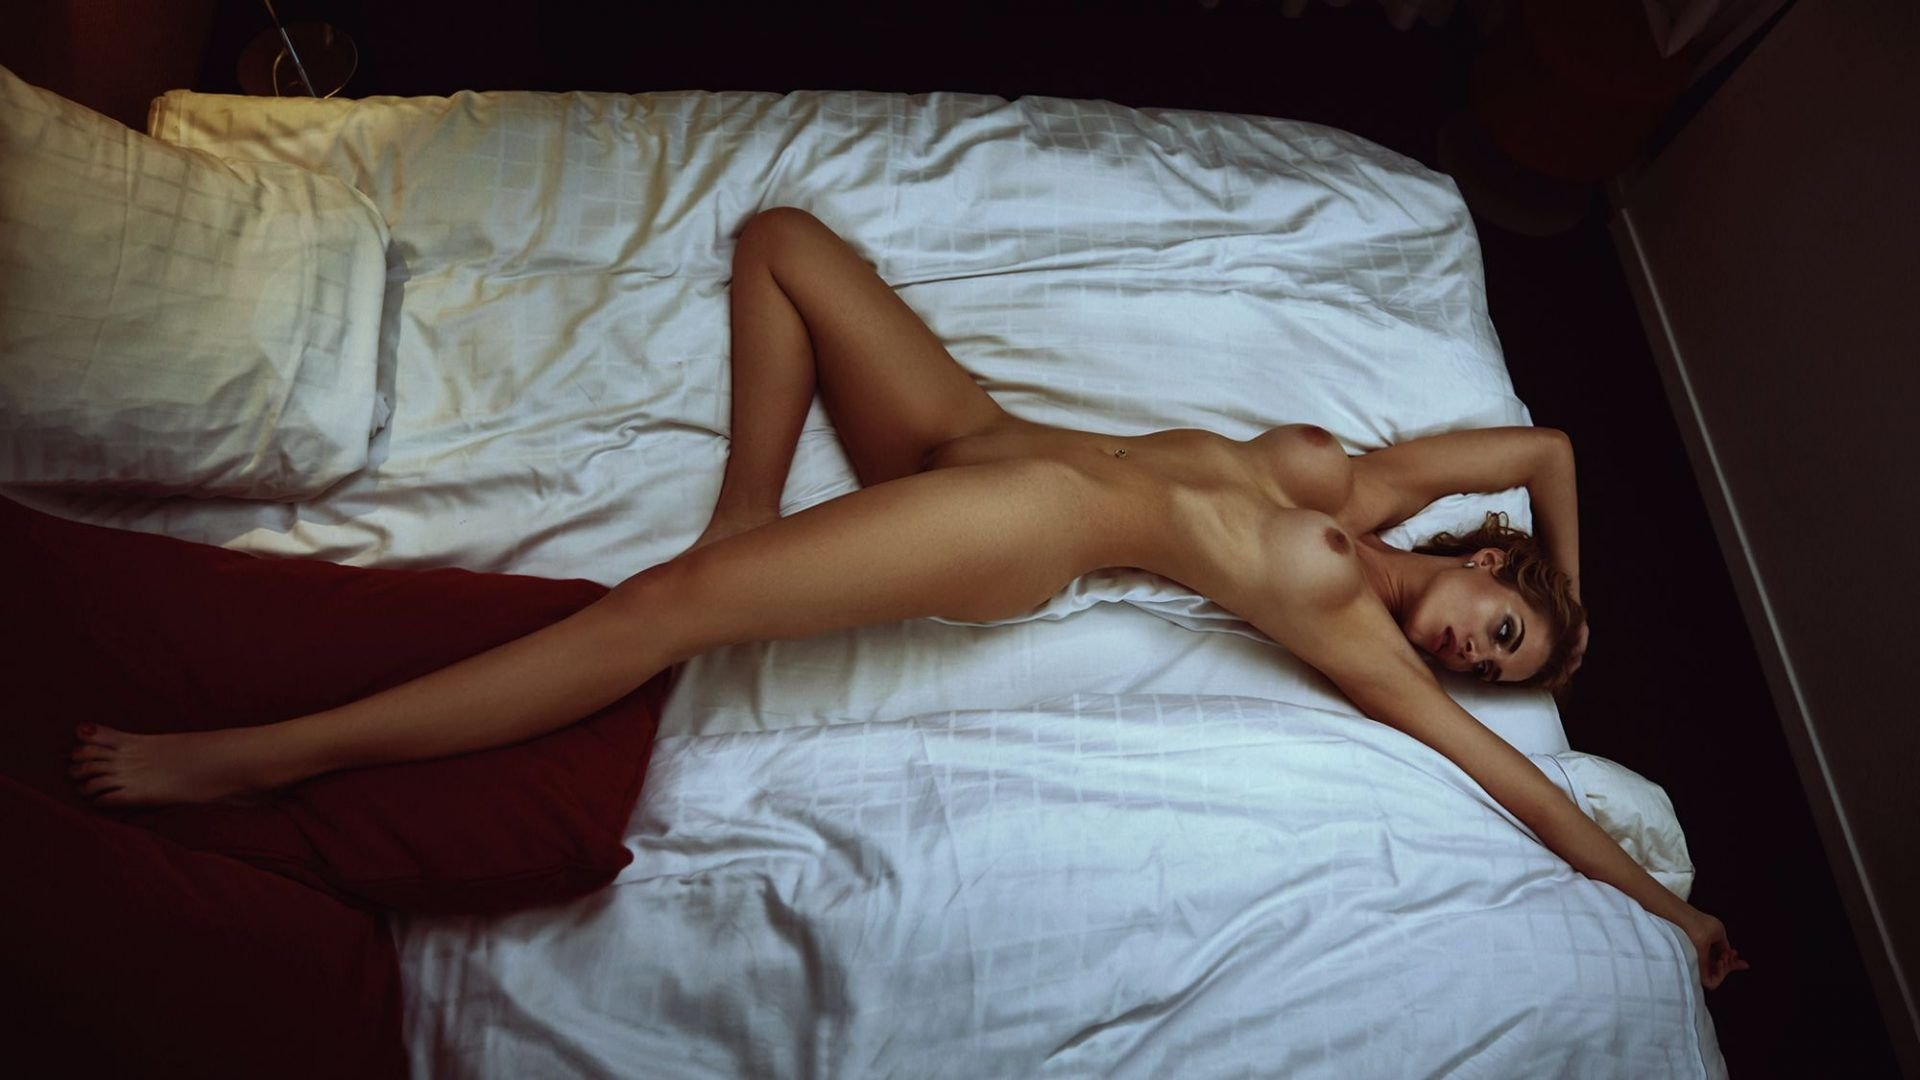 Cam model 01 rate her 7